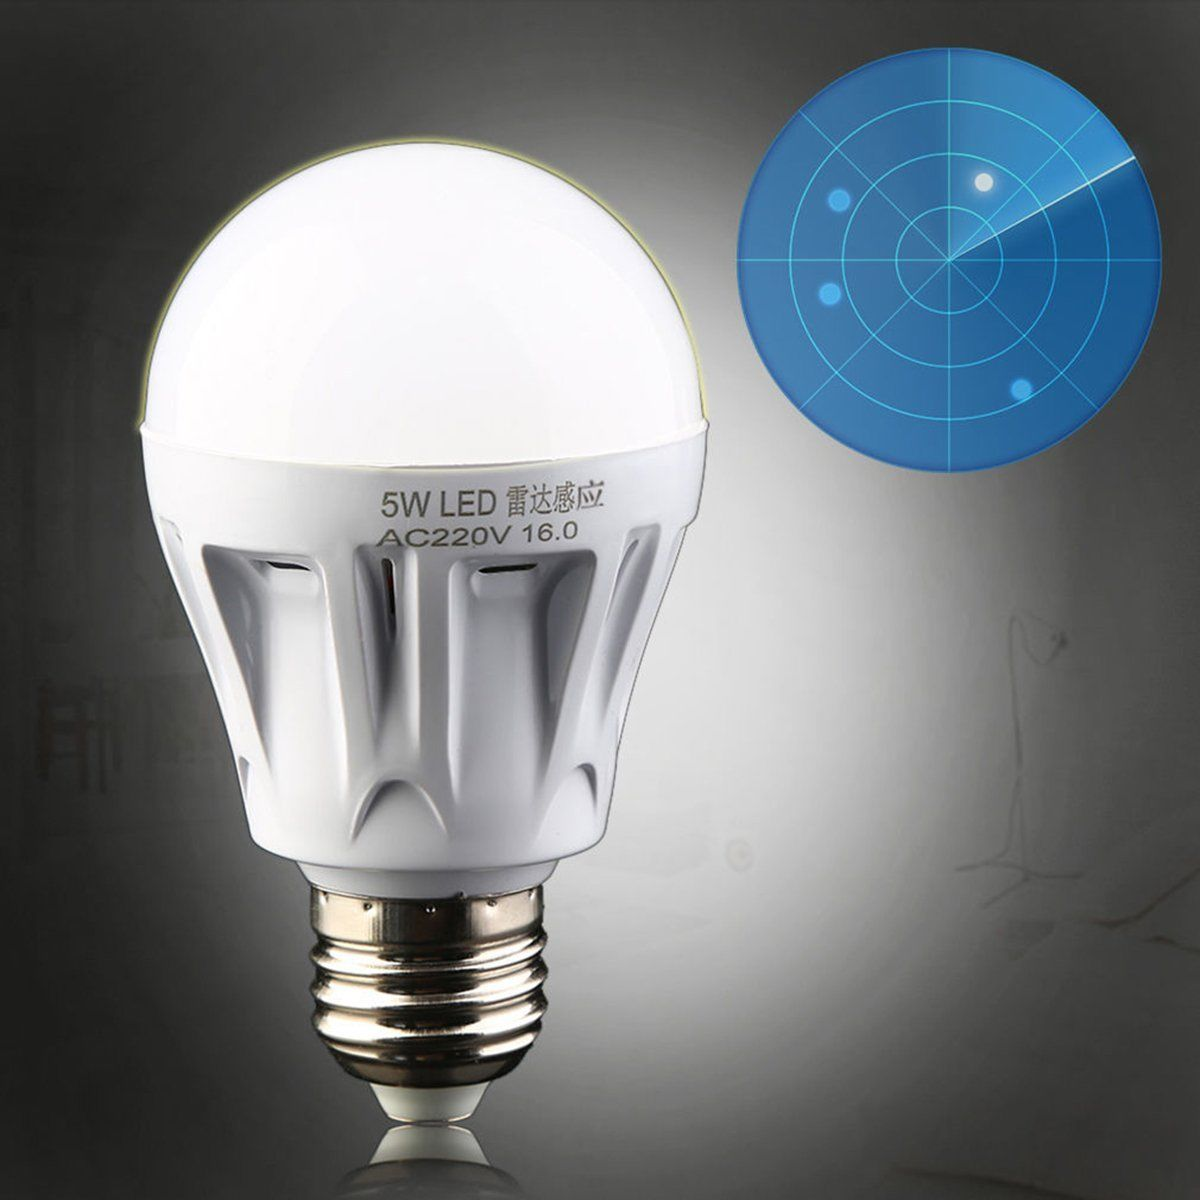 5w e27 led pir motion sensor detection lamp warm white bulb outdoor night light ebay. Black Bedroom Furniture Sets. Home Design Ideas